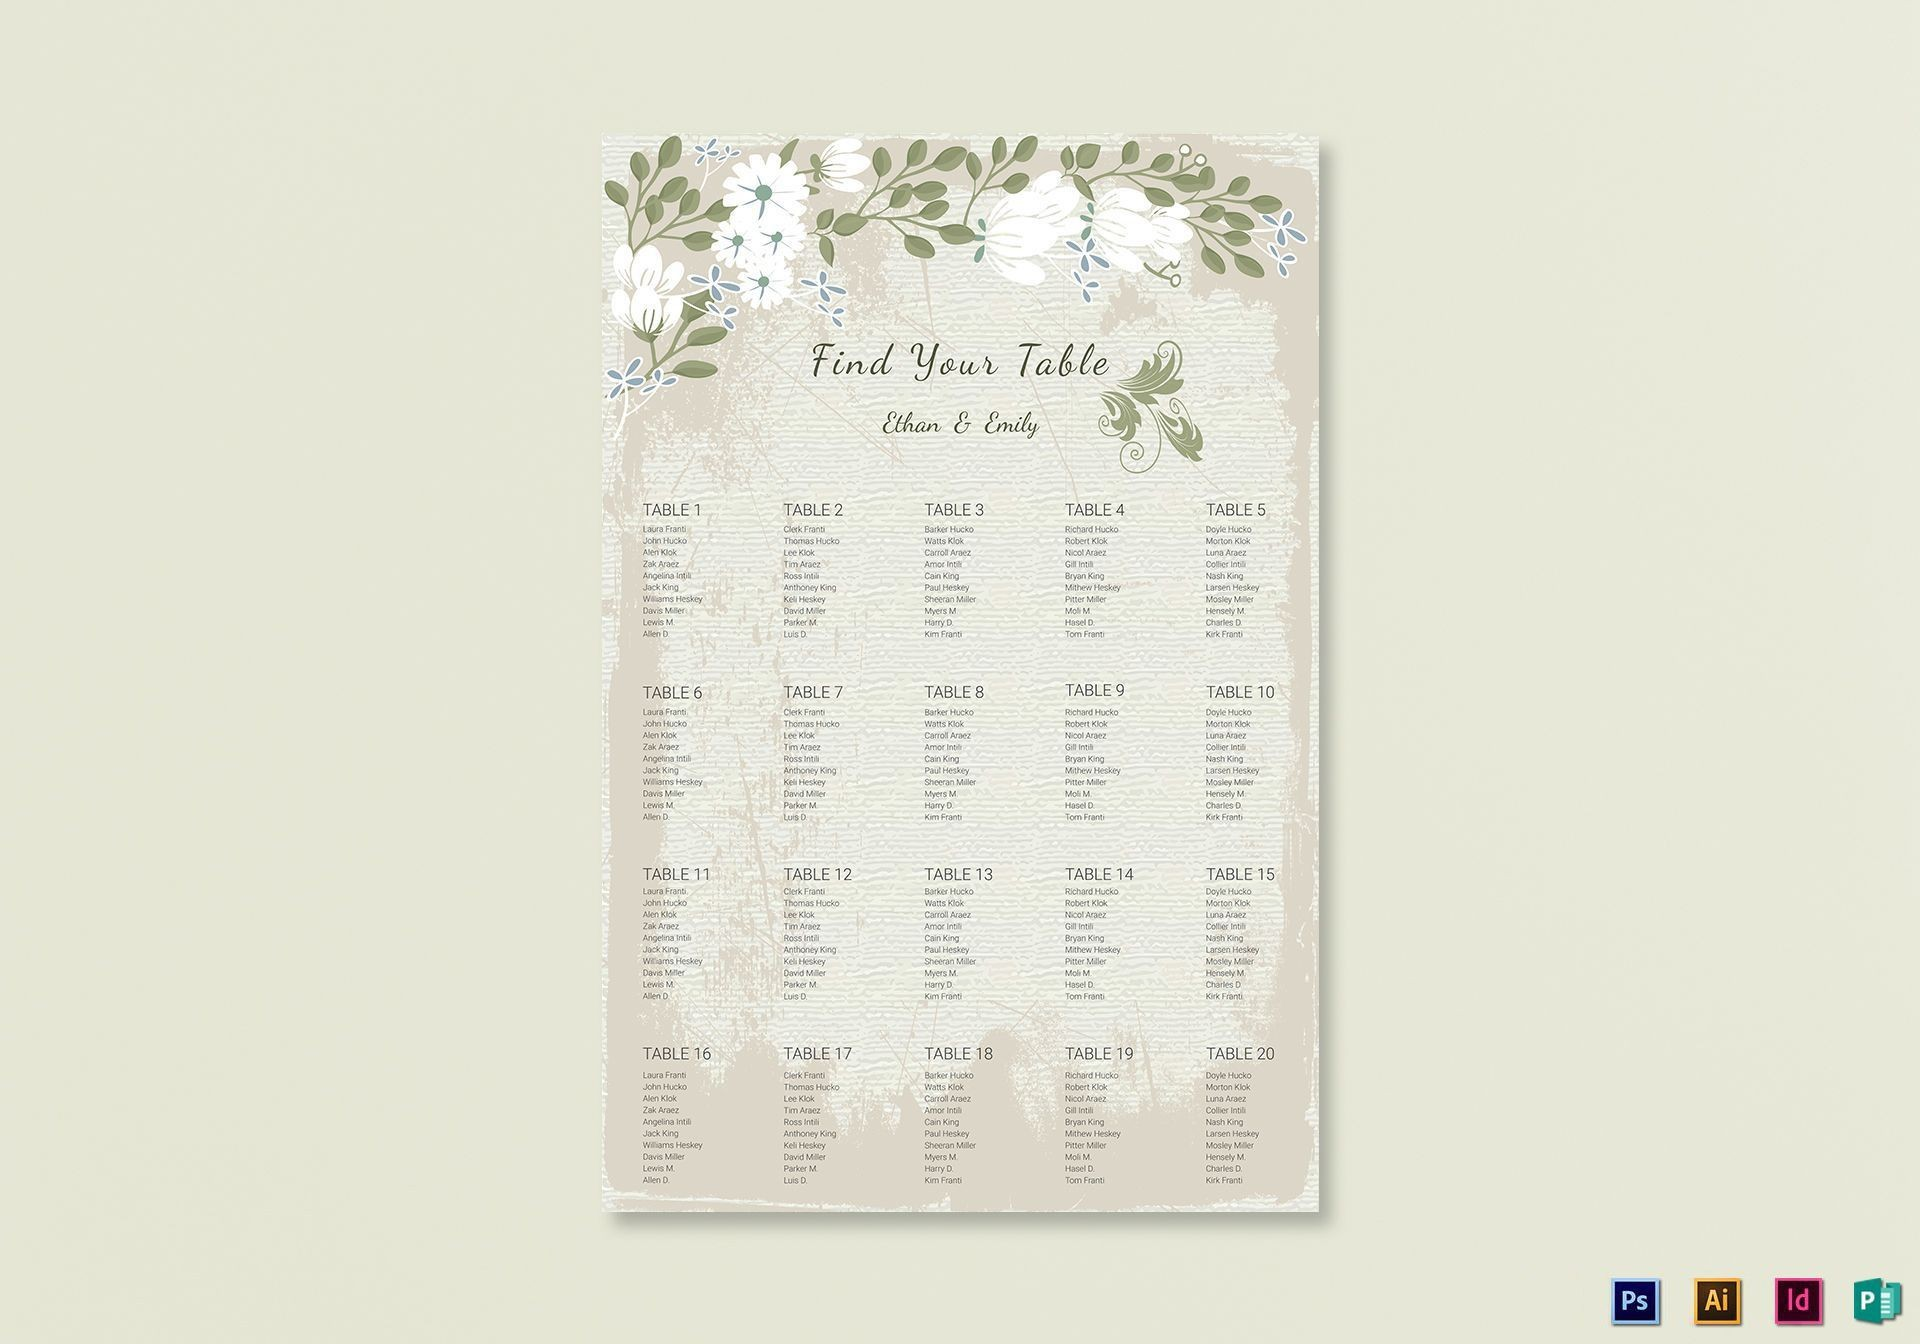 009 Stunning Seating Chart Wedding Template Example  Table Excel Printable Reception Free1920